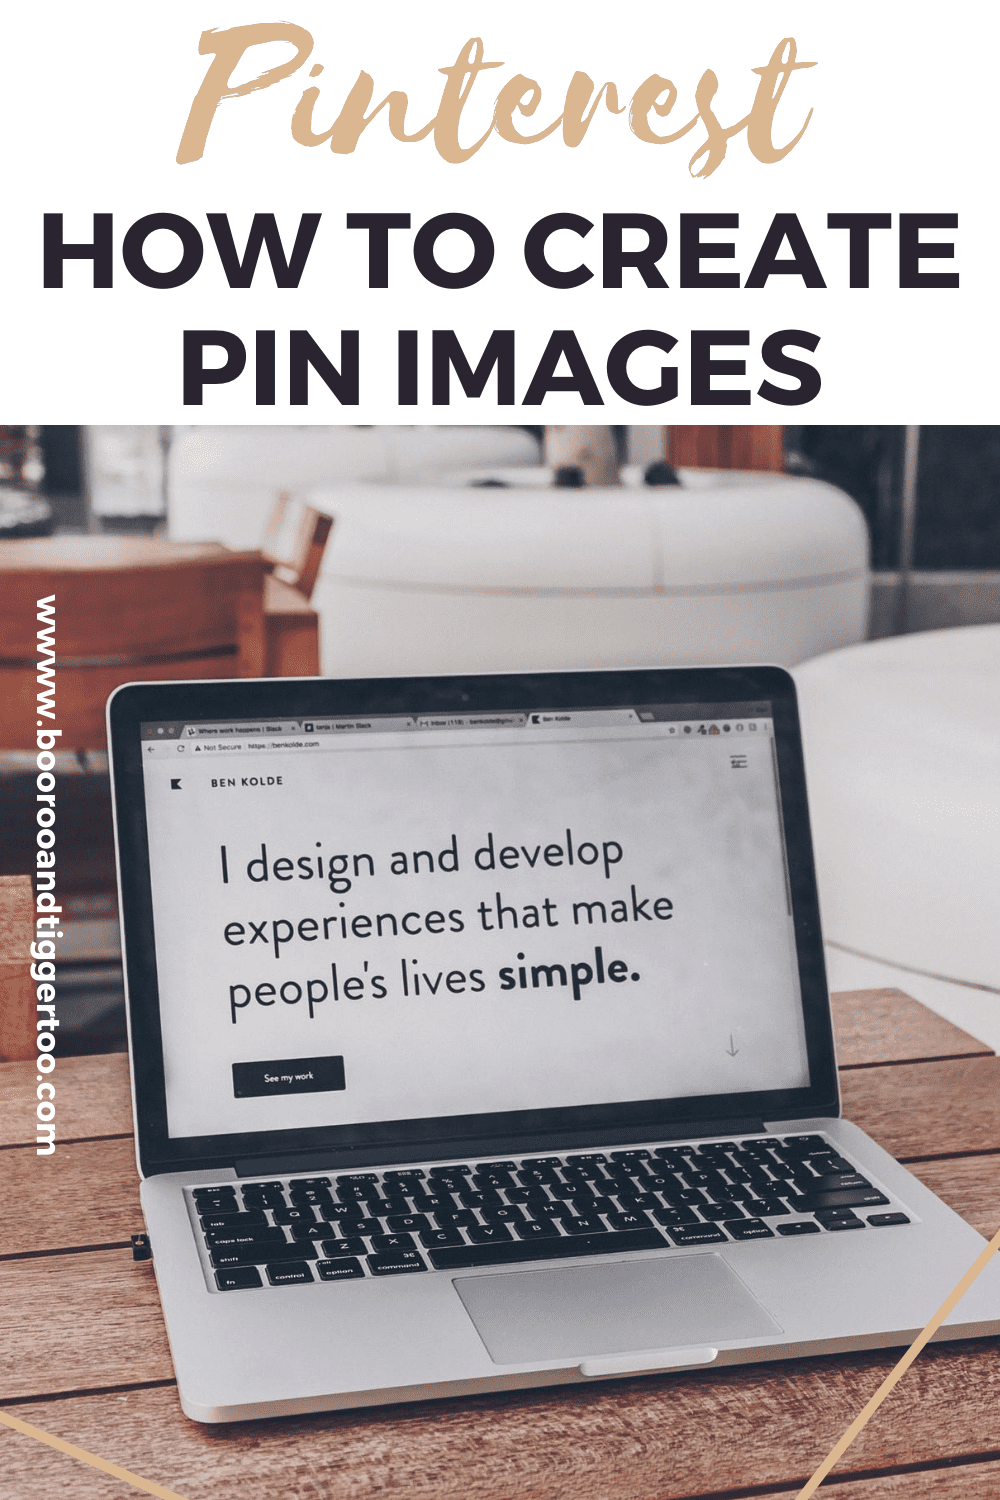 Pinterest - How to create pin images